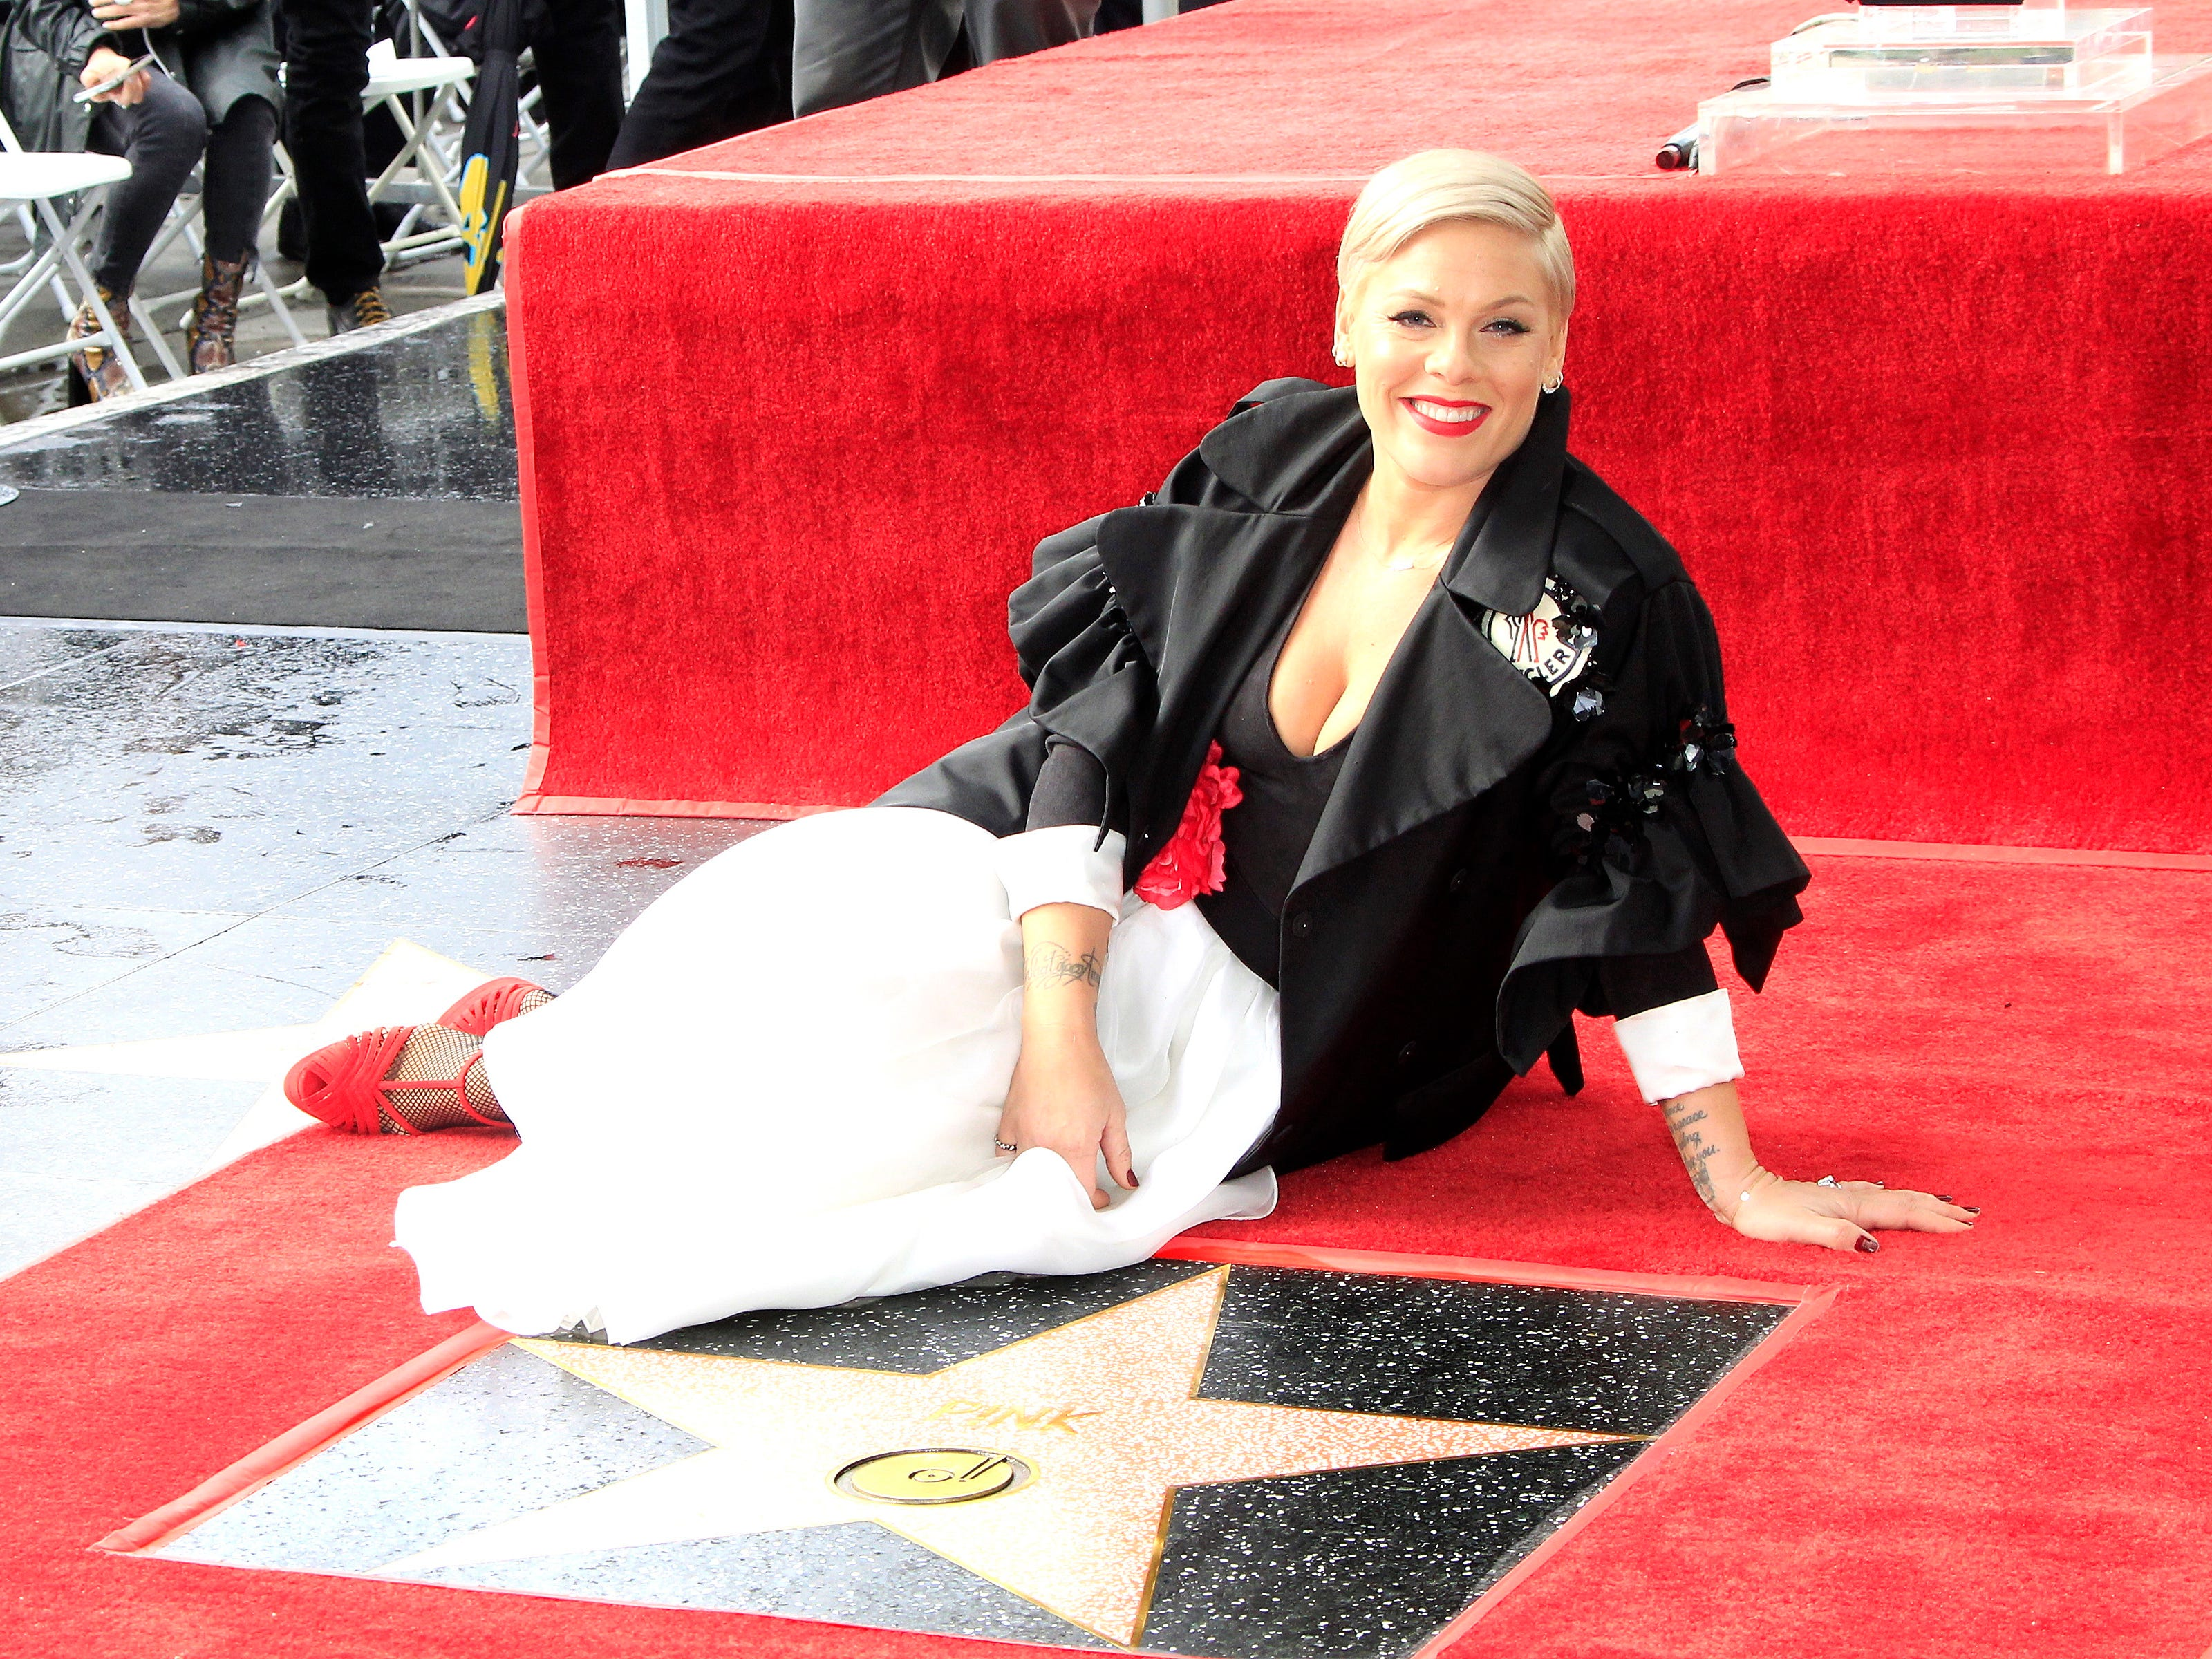 epa07346552 US singer Pink poses for photos as she receives the 2,656th Star on the Hollywood Walk of Fame in Hollywood, California, USA, 05 February 2019. The star was dedicated in the Category of Recording.  EPA-EFE/NINA PROMMER ORG XMIT: NPX01